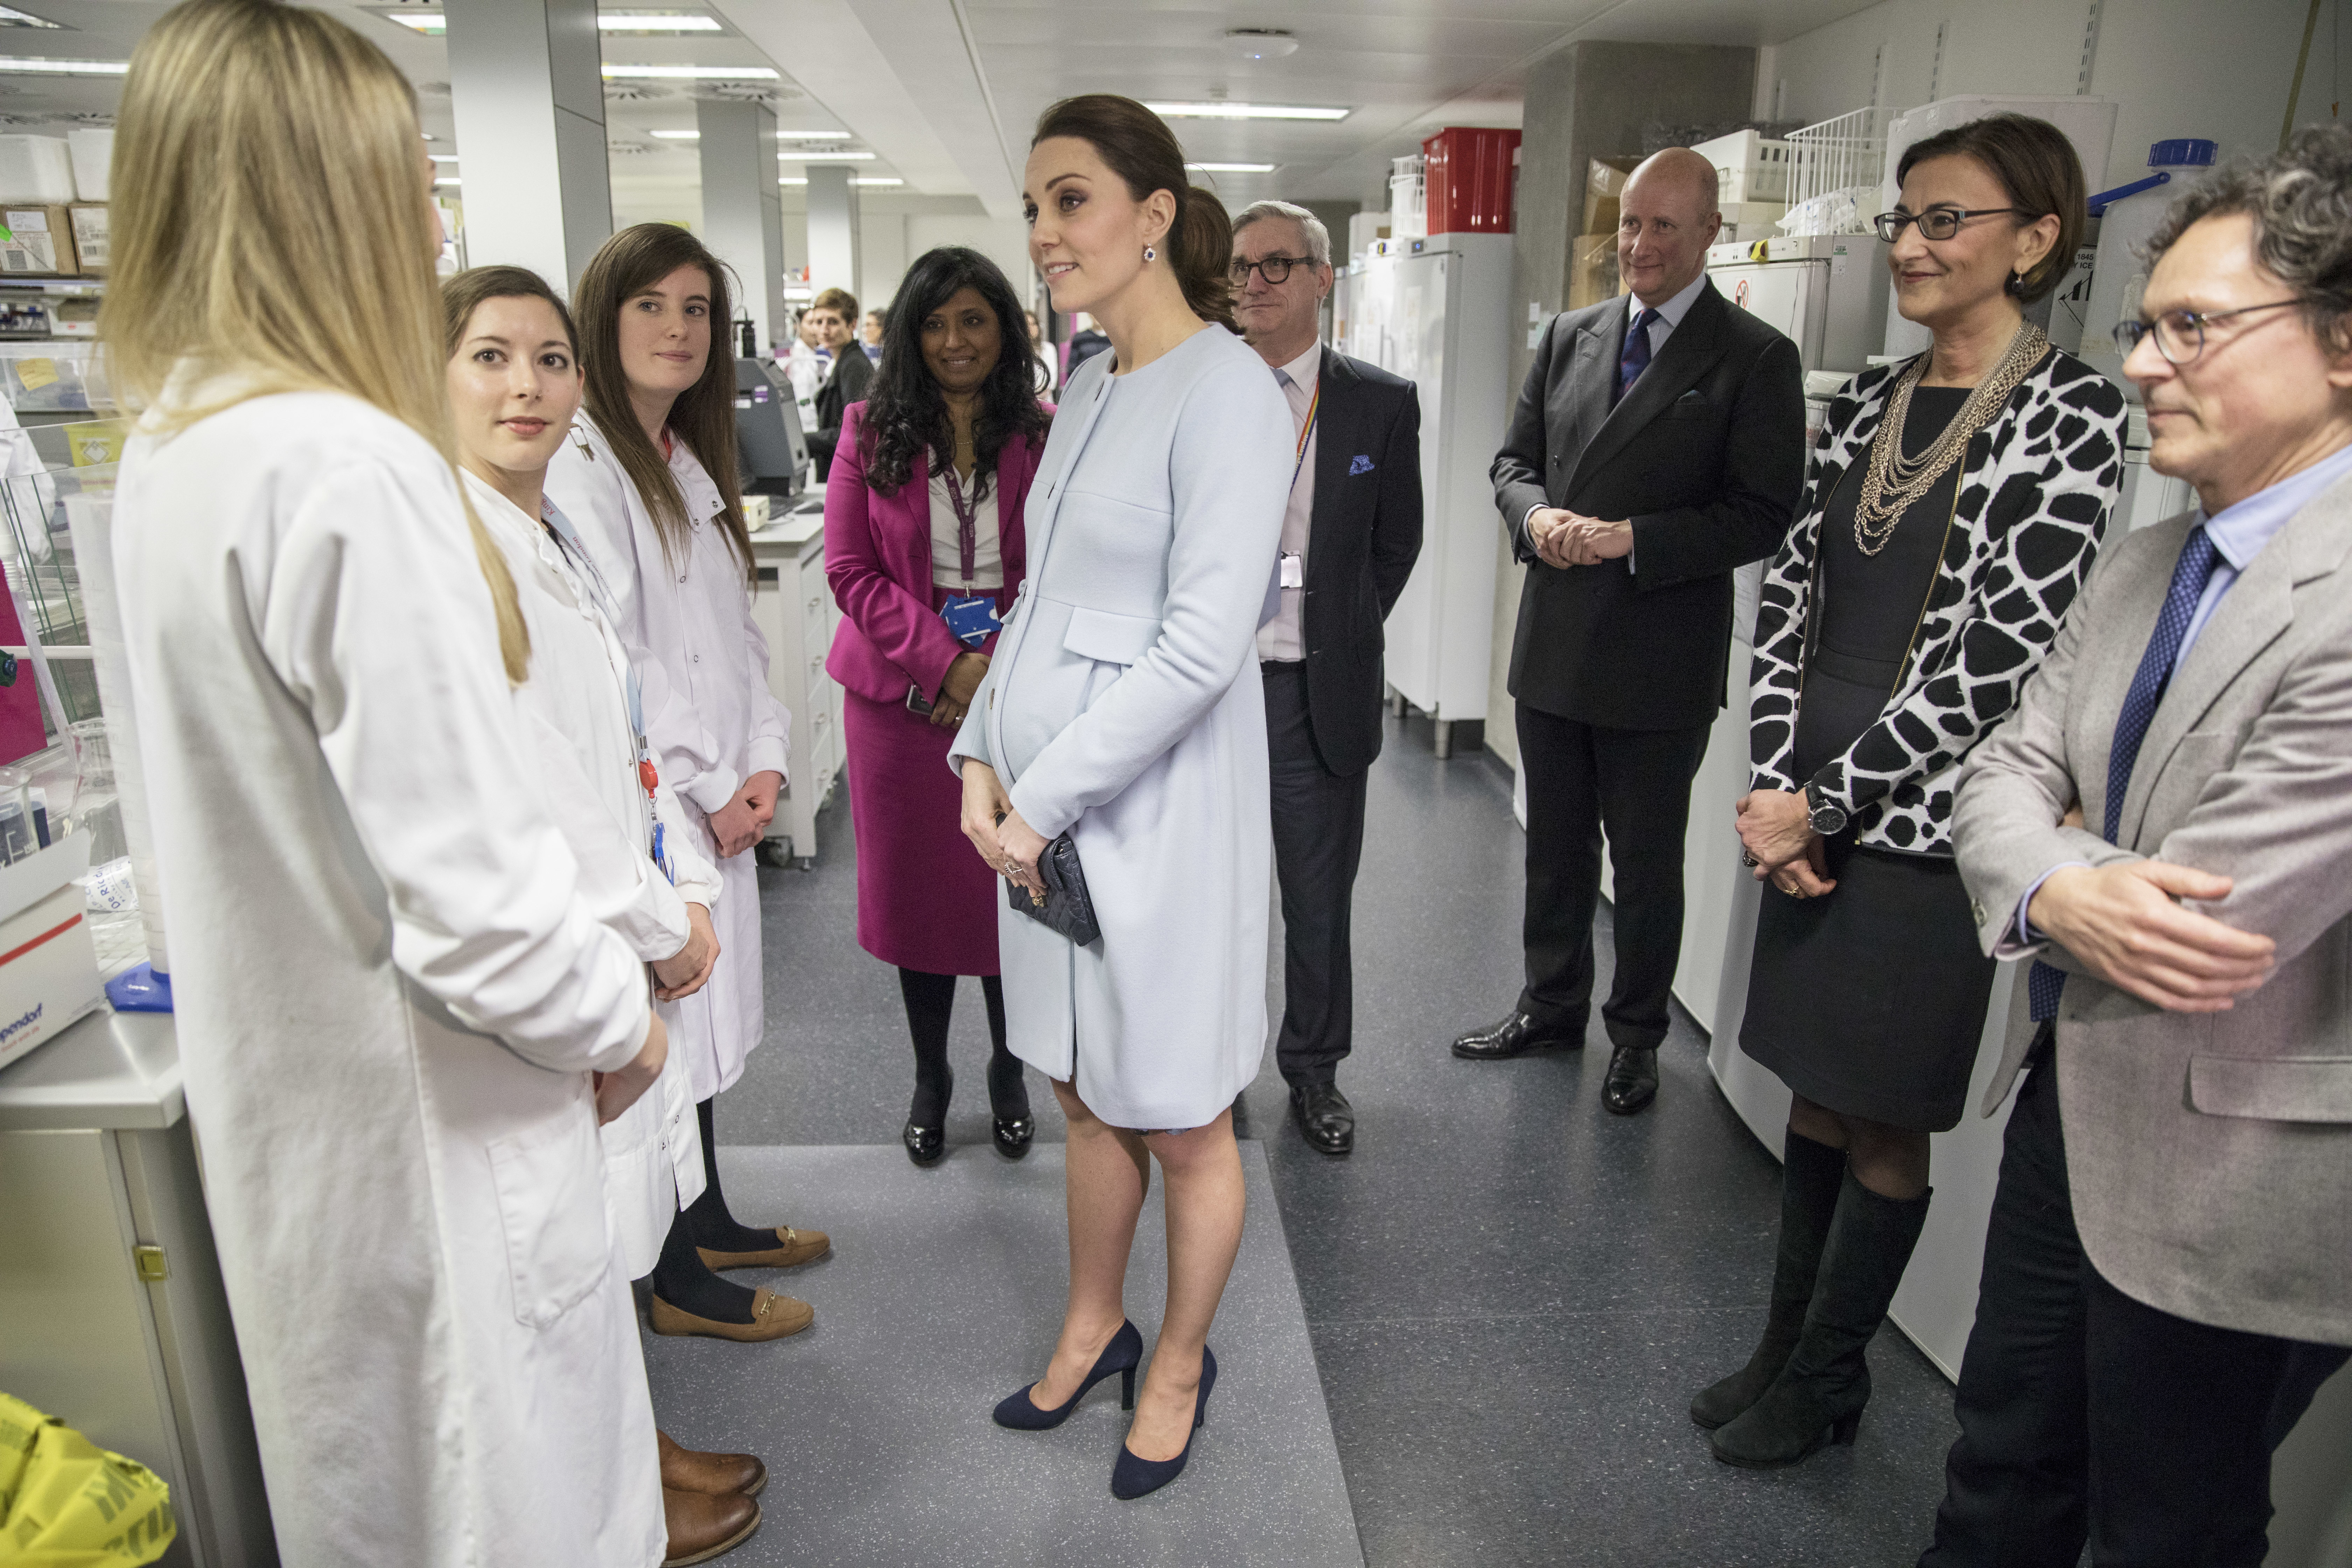 "<div class=""meta image-caption""><div class=""origin-logo origin-image none""><span>none</span></div><span class=""caption-text"">Kate meets with graduates during her visit to The Maurice Wohl Clinical Neuroscience Institute, at King's College in London, Wednesday Jan. 24, 2018. (Jack Hill/Pool via AP)</span></div>"